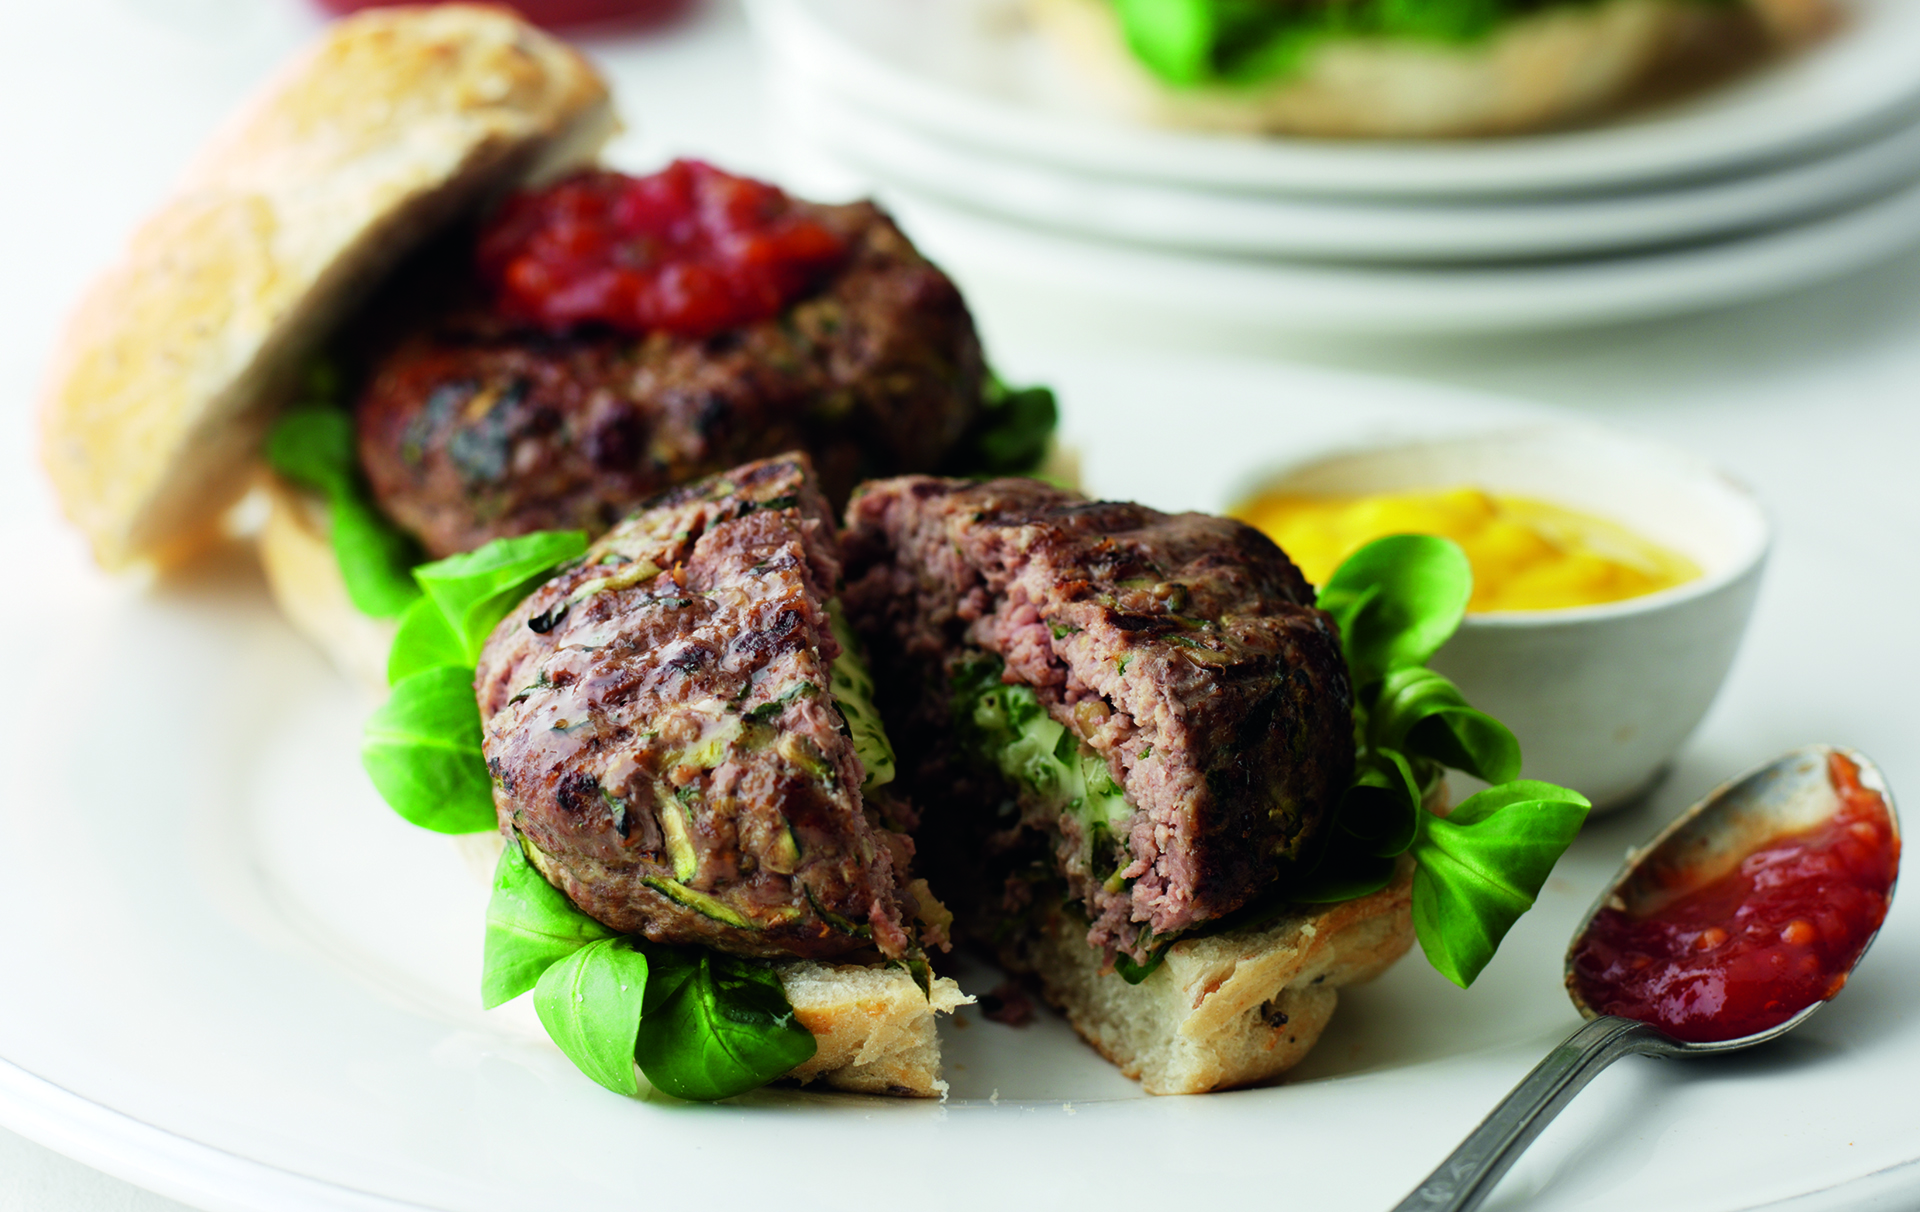 Adding lean red meat to family meal times, that's nutritious and delicious